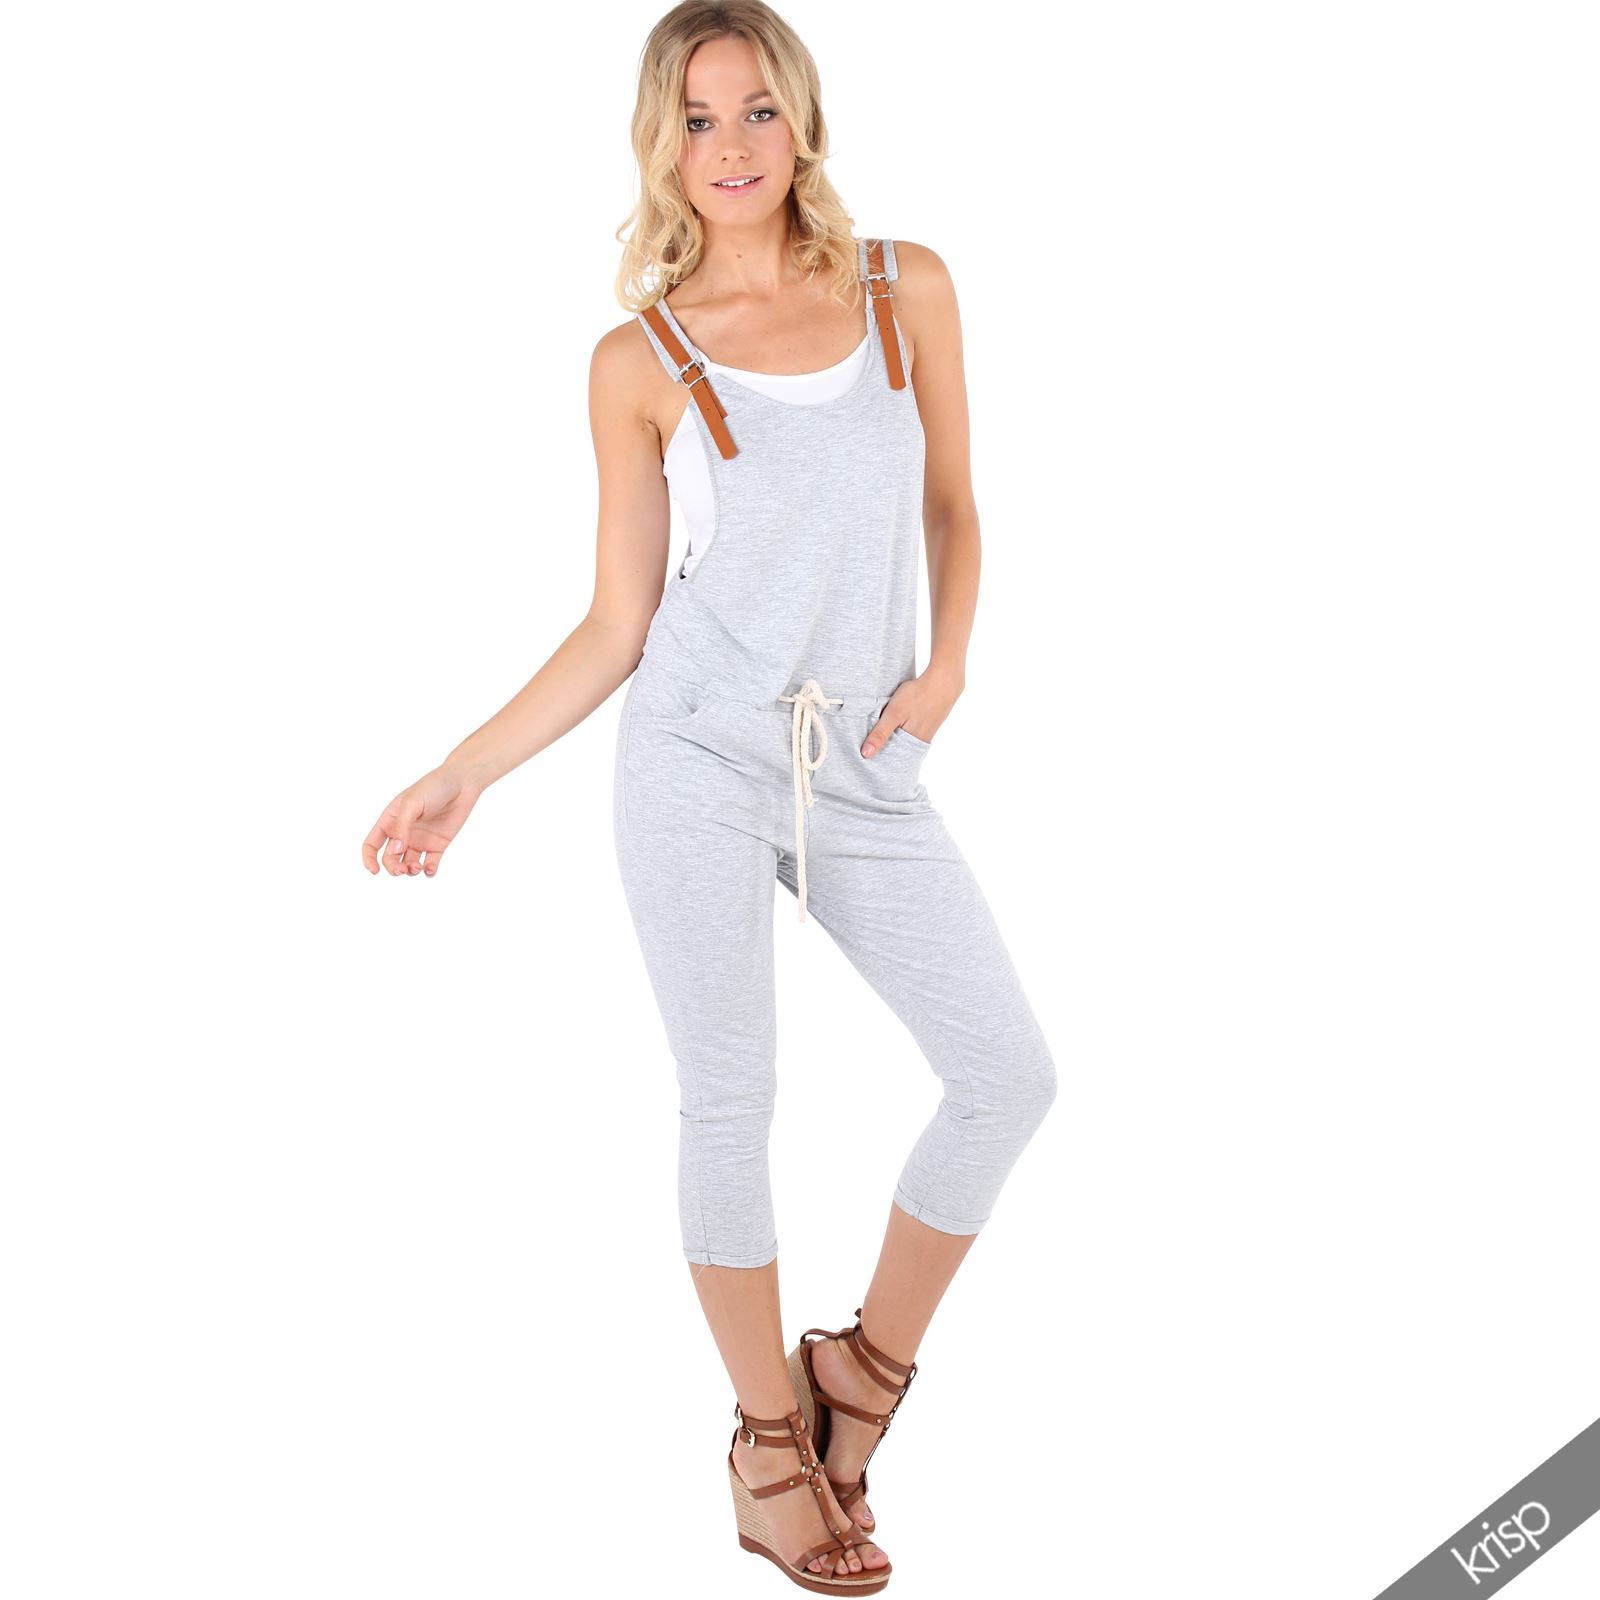 womens leather strap jersey jumpsuit one piece playsuit